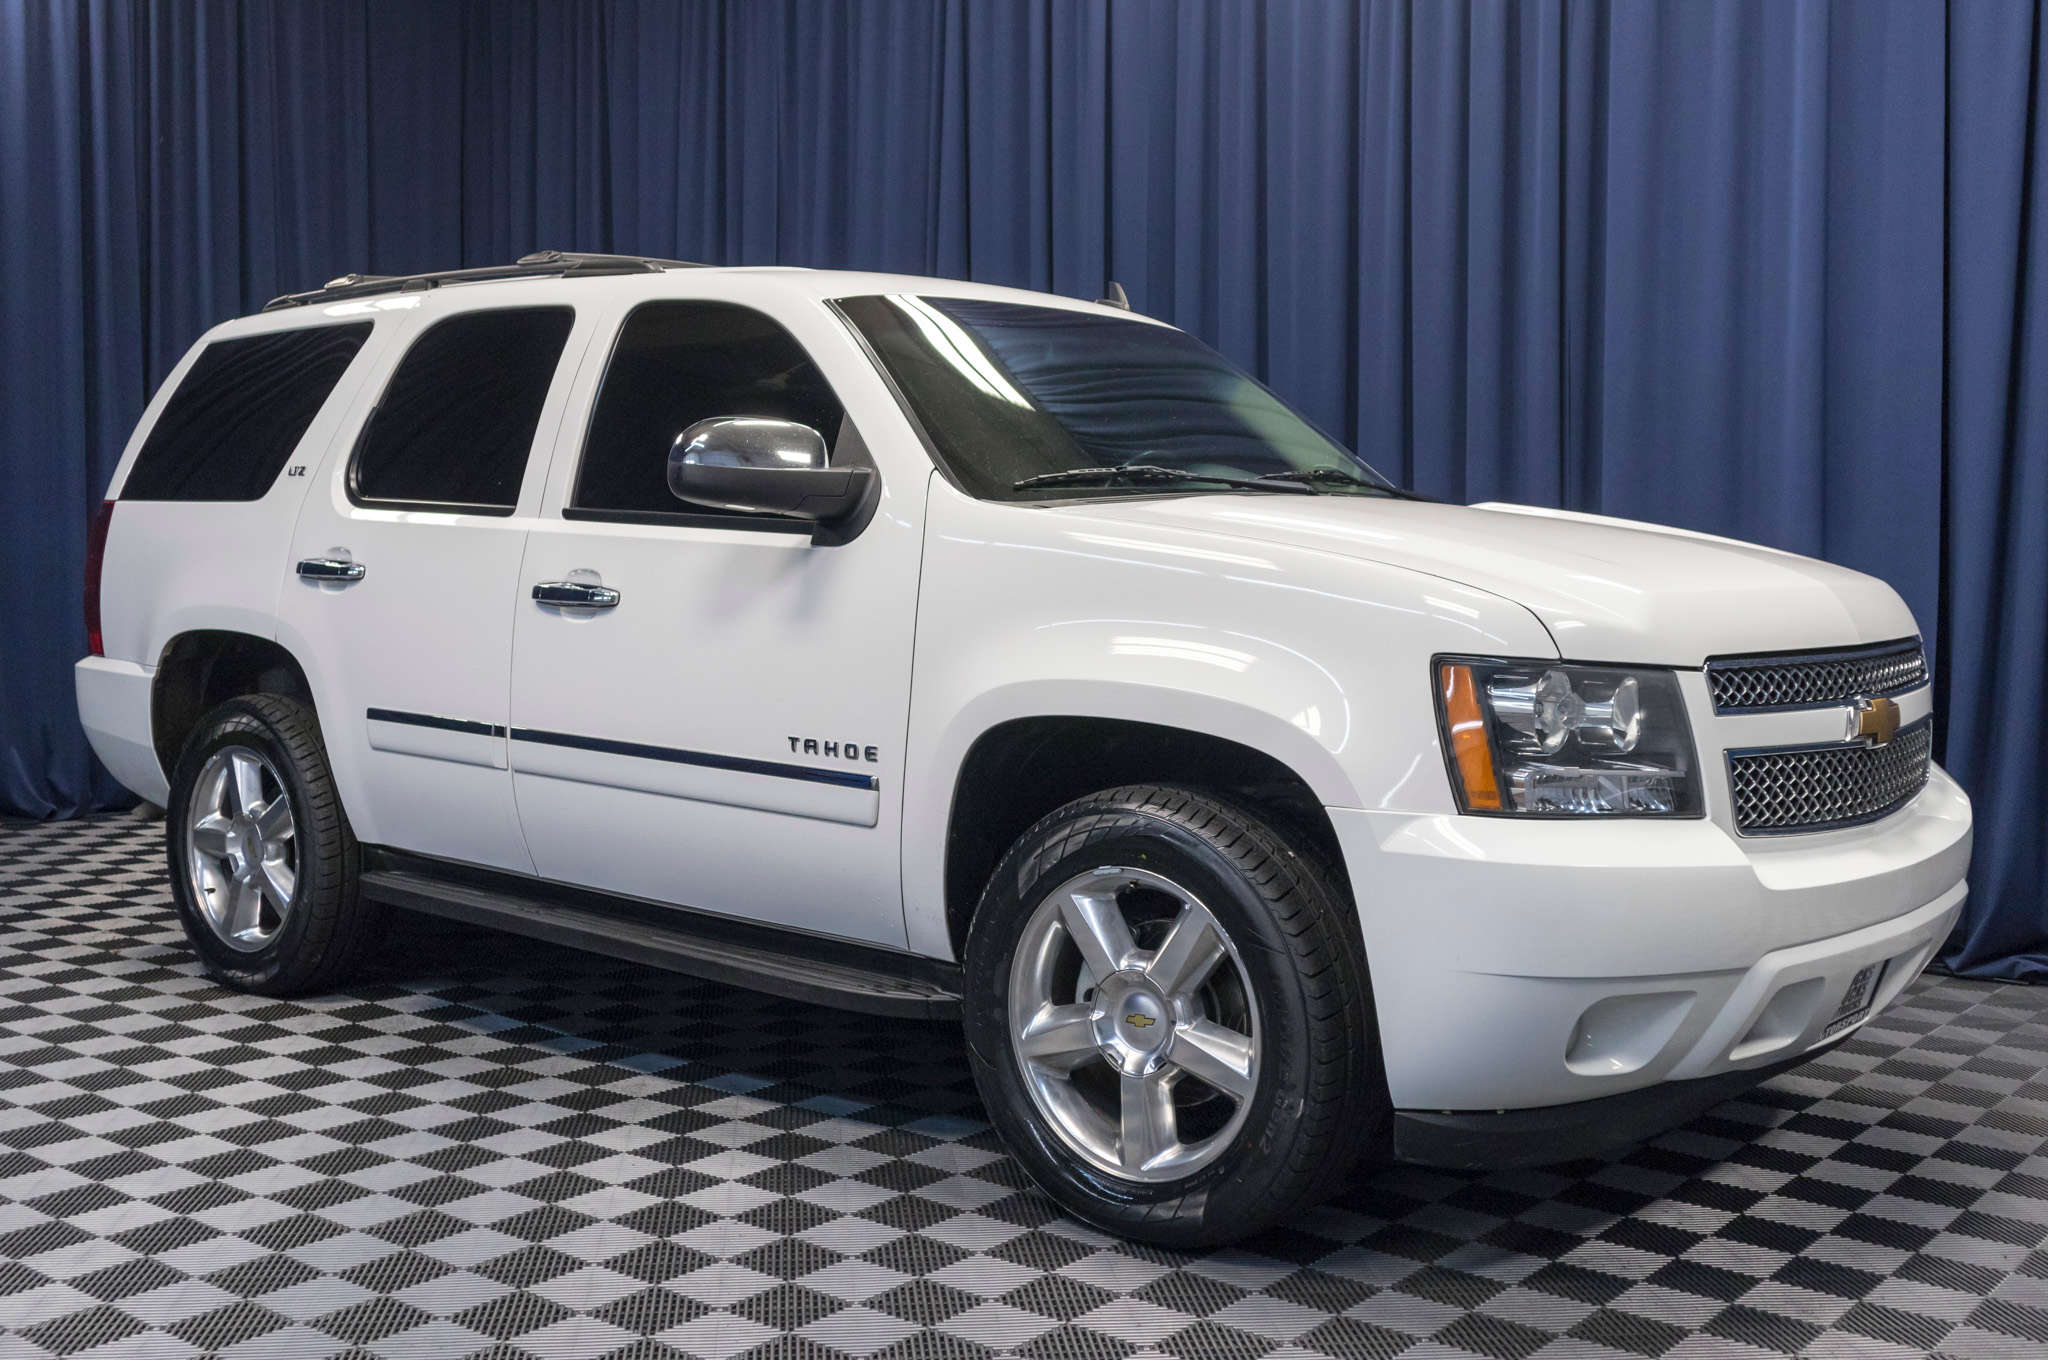 Used 2013 Chevrolet Tahoe LTZ 4x4 SUV For Sale